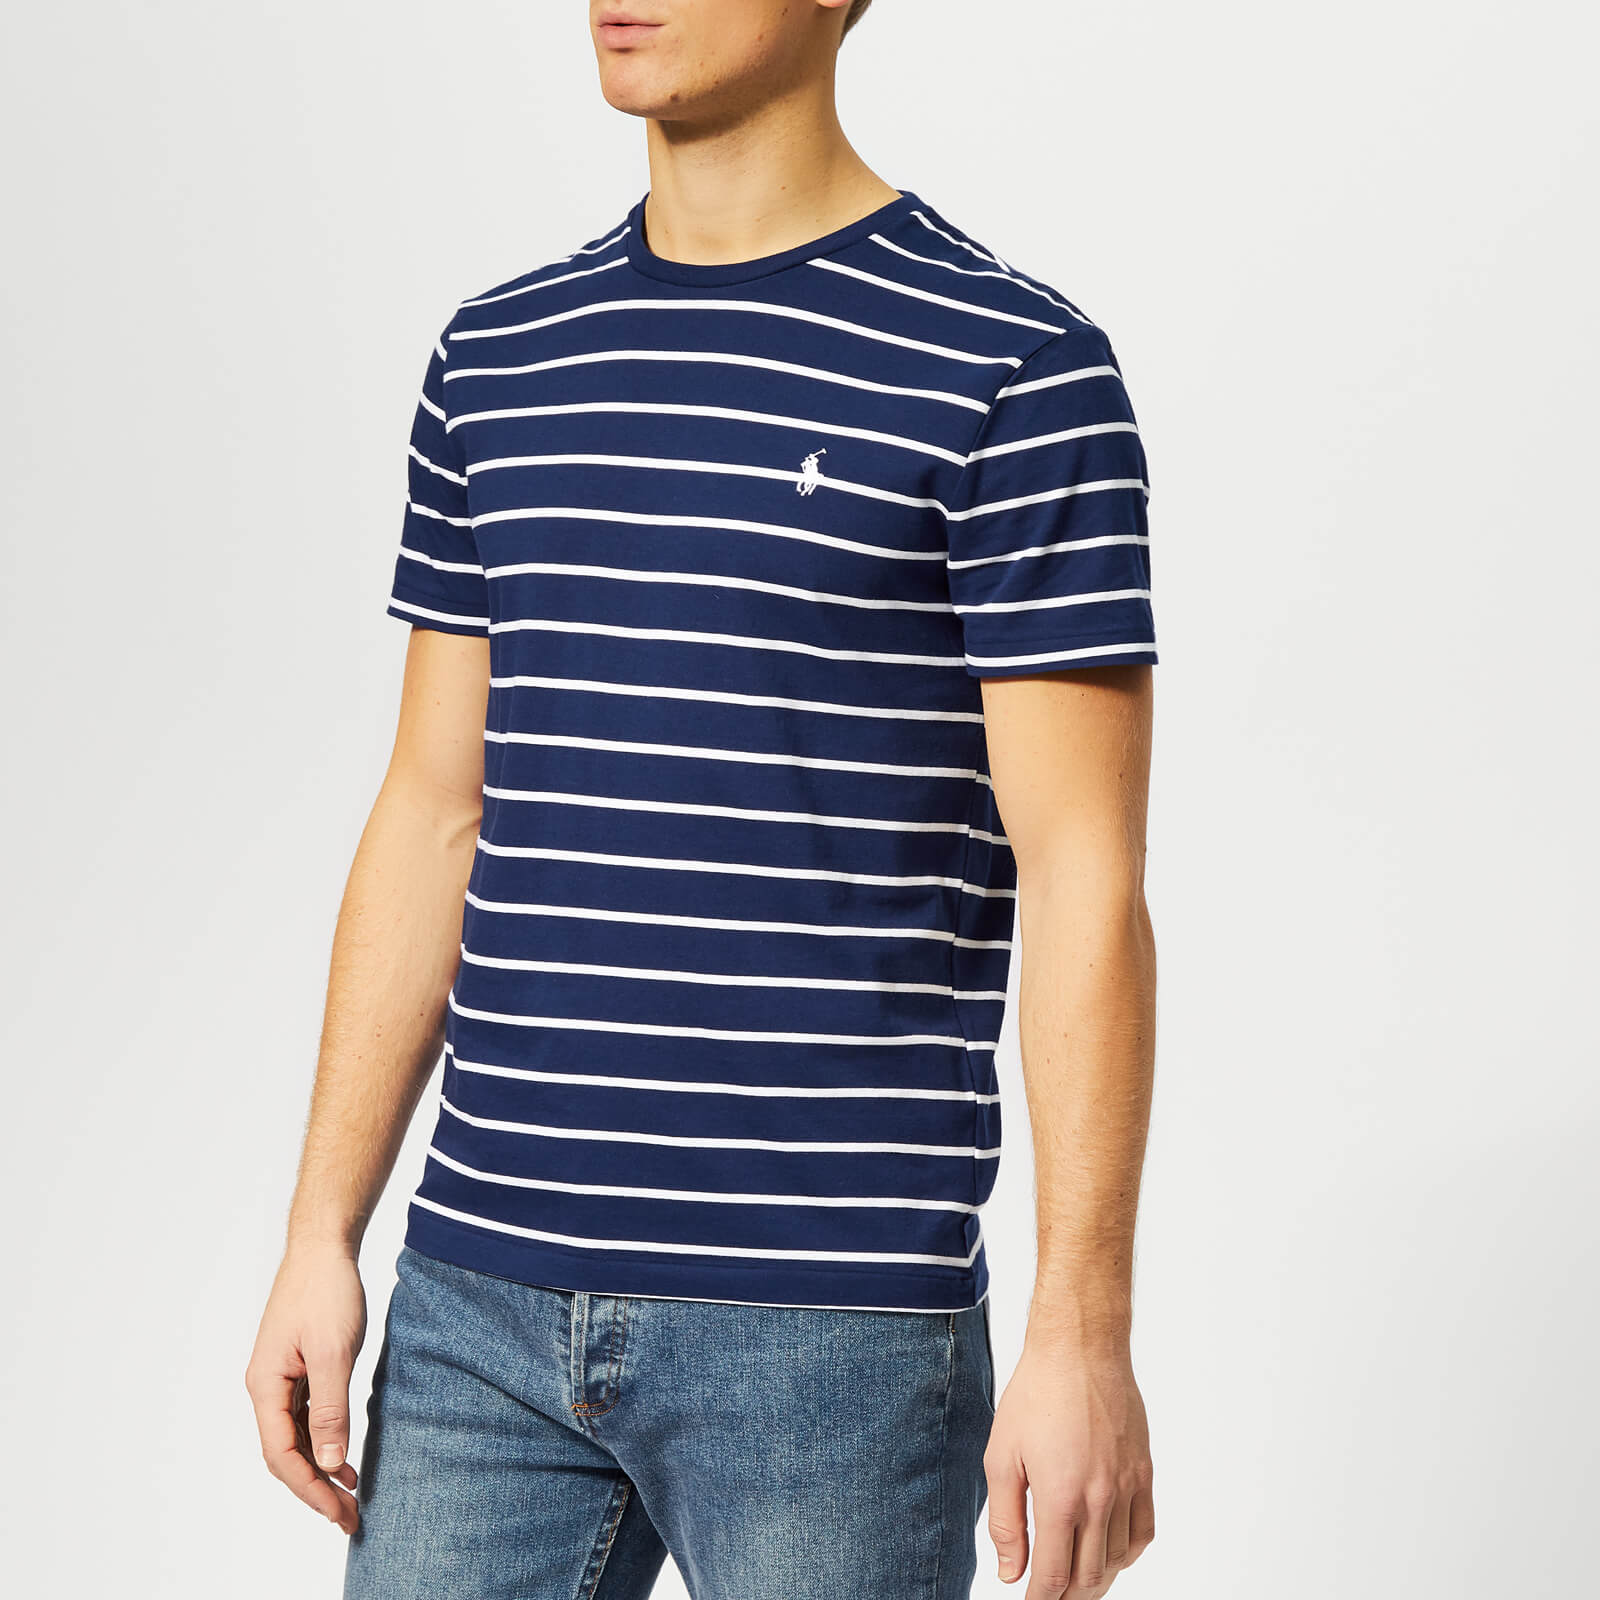 9f418459 Polo Ralph Lauren Men's Custom Slim Fit Stripe Short Sleeve T-Shirt -  Holiday Navy - Free UK Delivery over £50